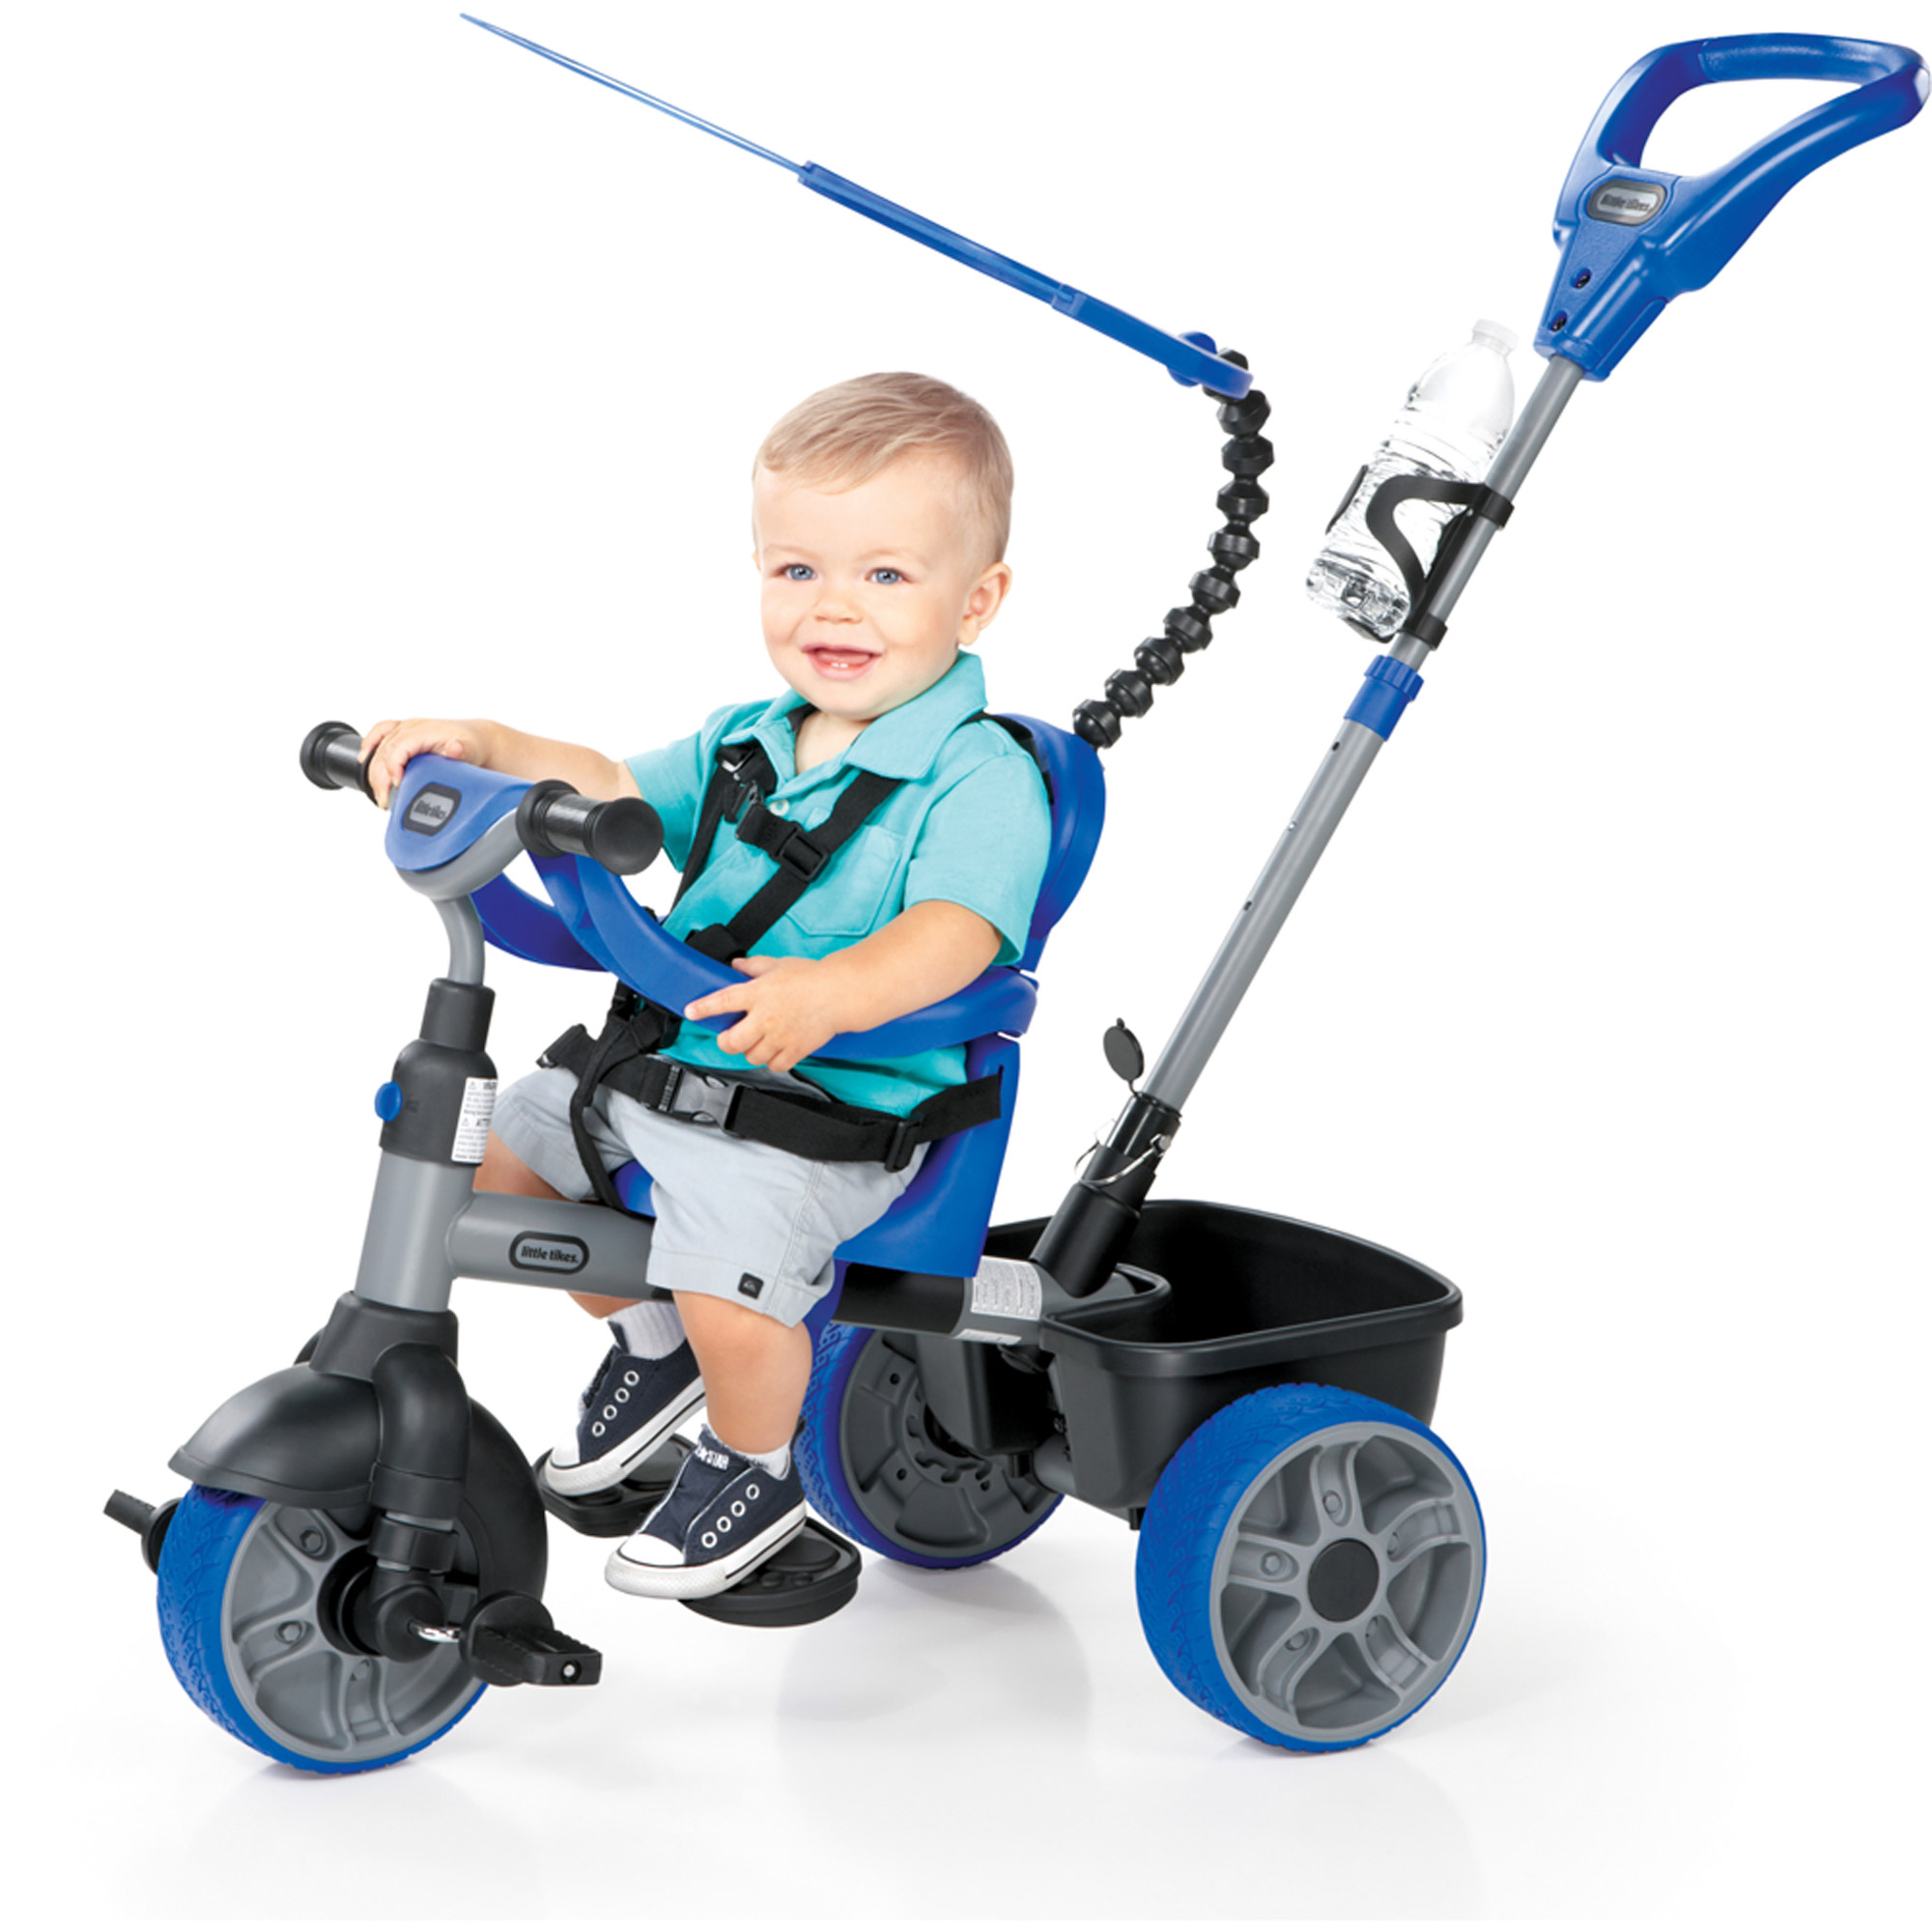 Little Tikes 4-in-1 Basic Edition Trike, Blue by MGA Entertainment